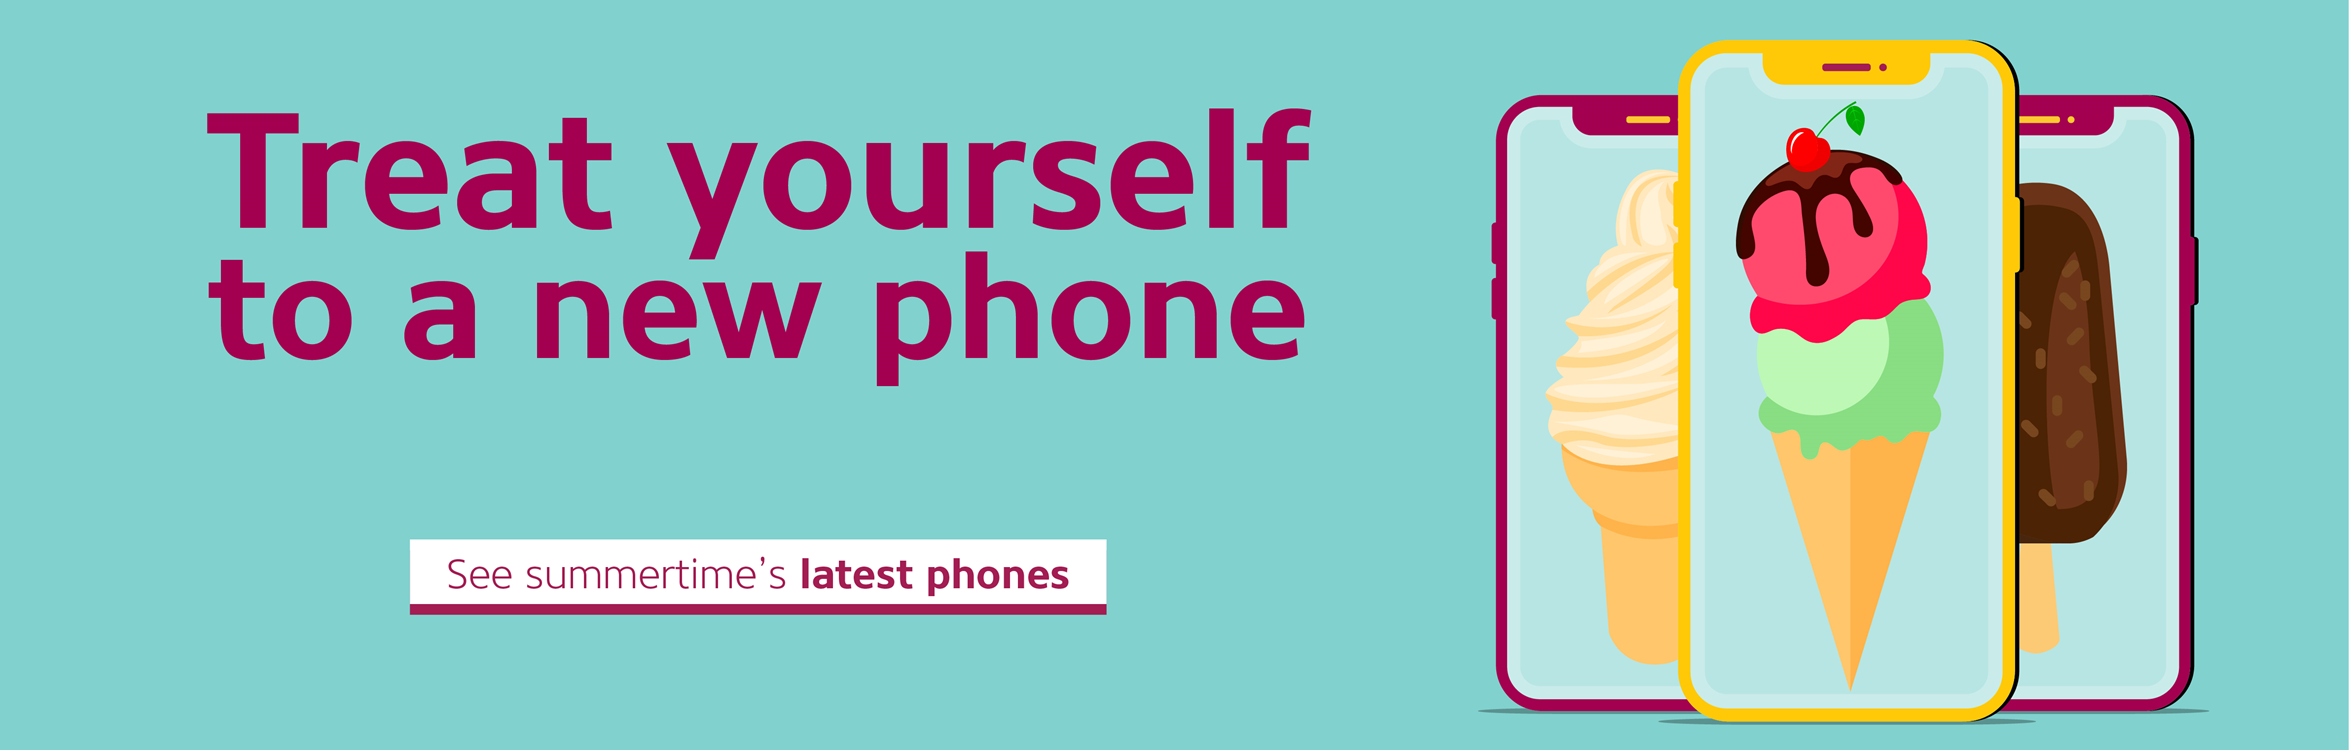 Treat yourself to a new phone